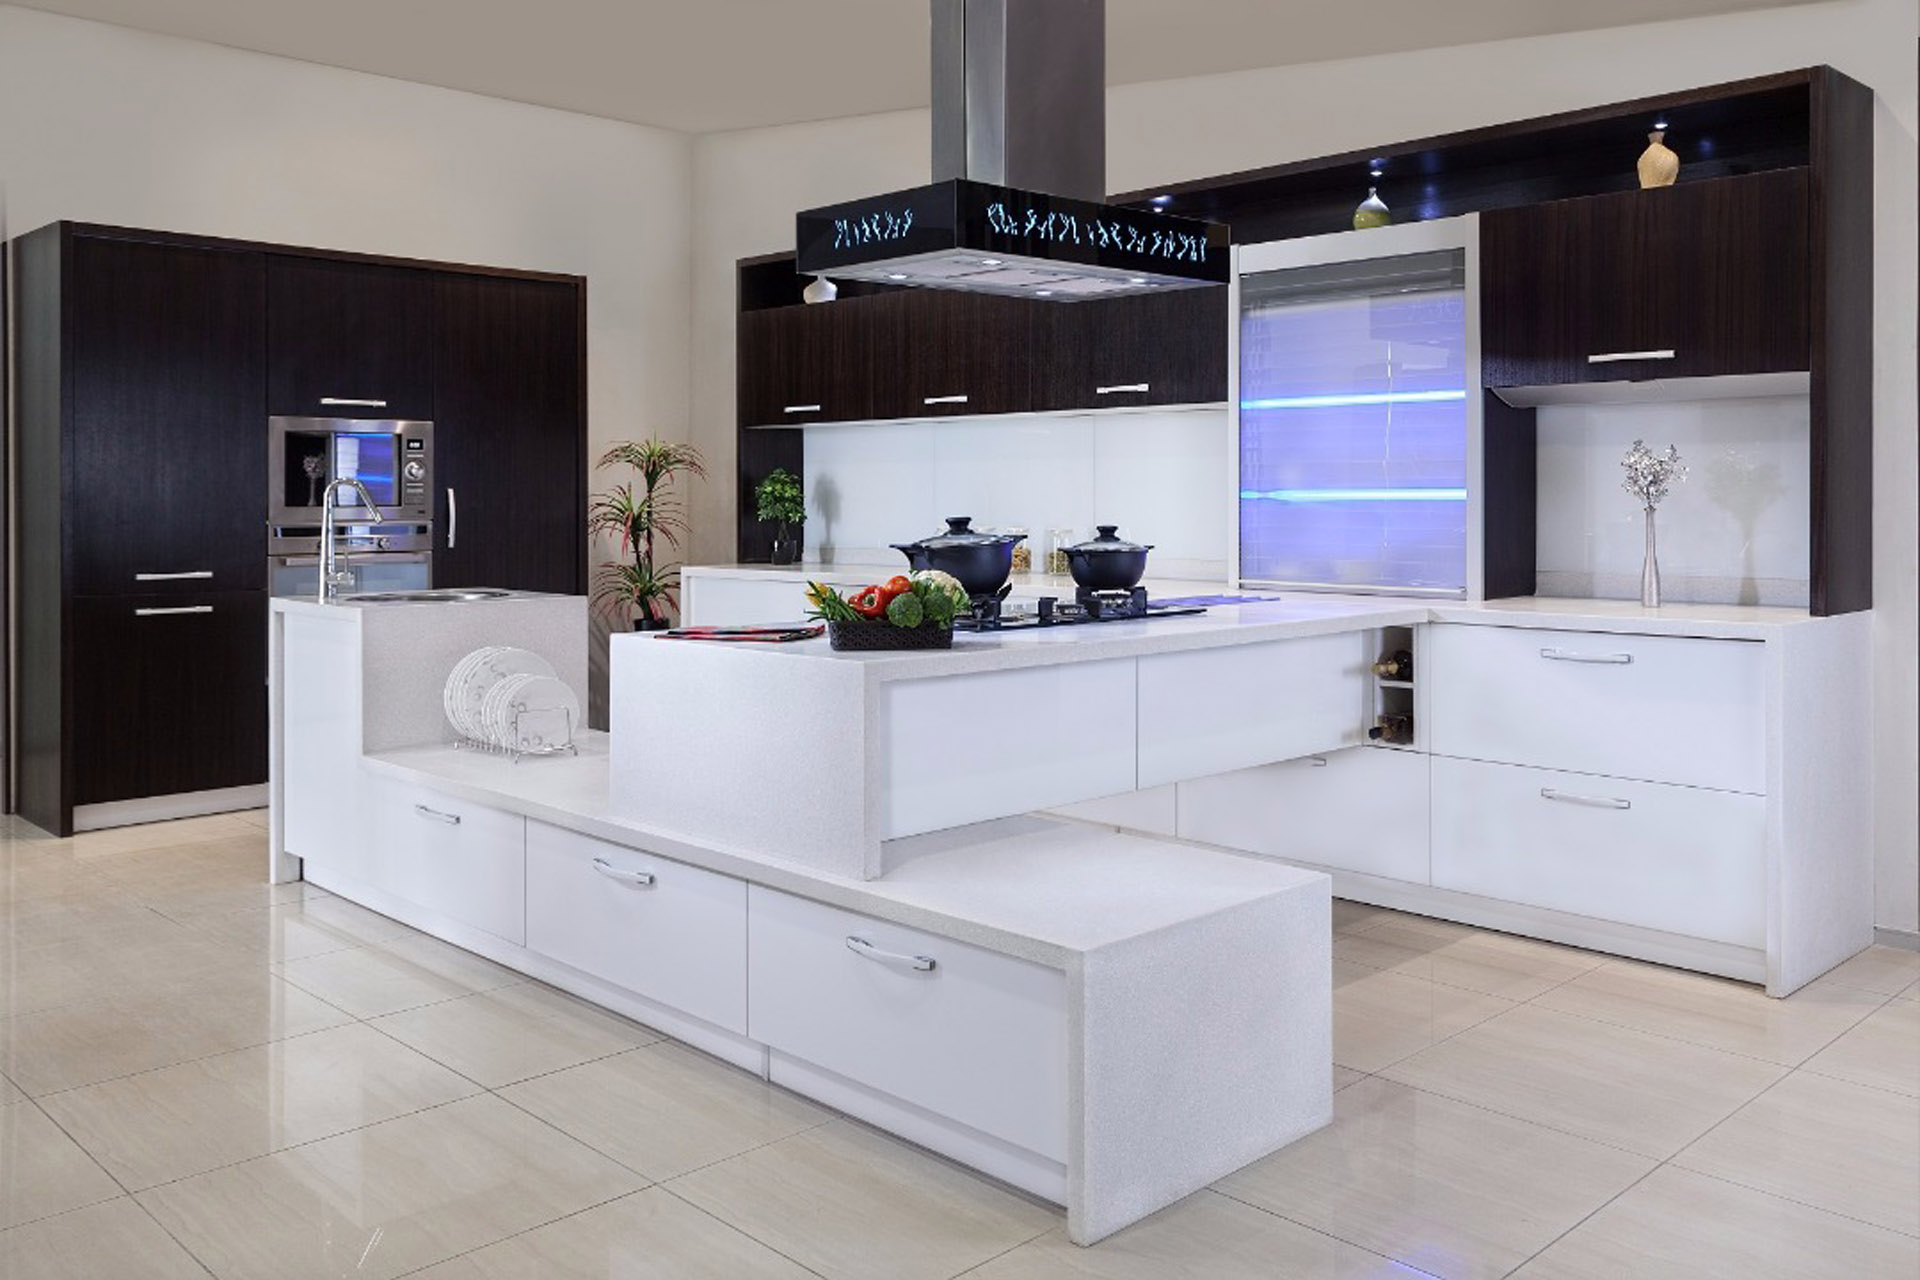 Black And White Kitchens Termite Proof Modular Kitchen Dealer Manufacturer Suppliers In Dehradun Uttarakhand